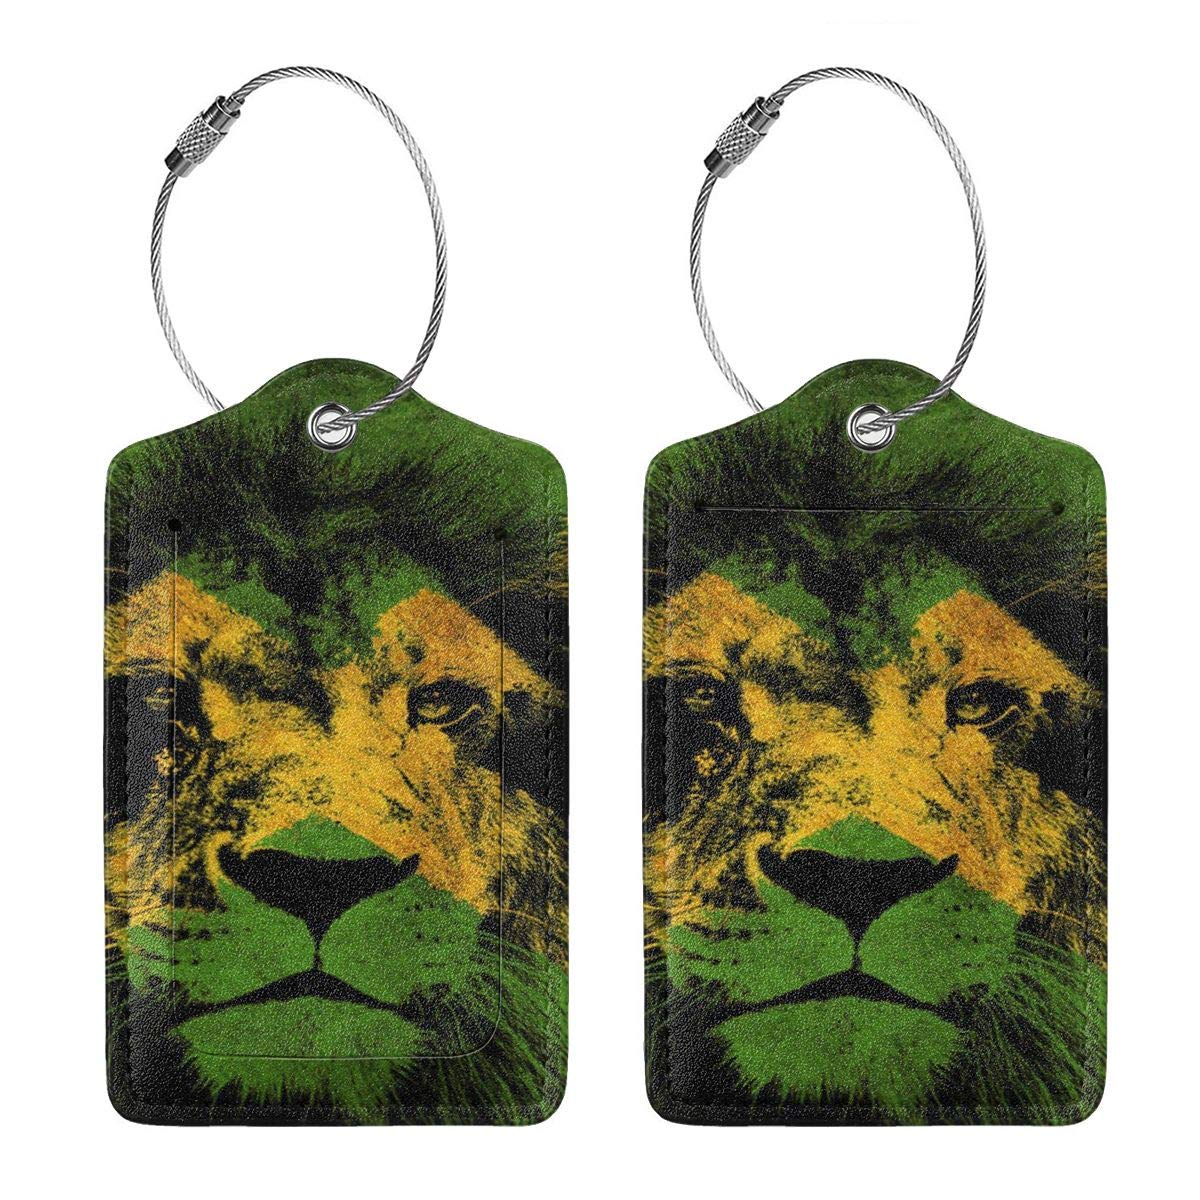 GoldK Jamaican Flag with Lion Leather Luggage Tags Baggage Bag Instrument Tag Travel Labels Accessories with Privacy Cover